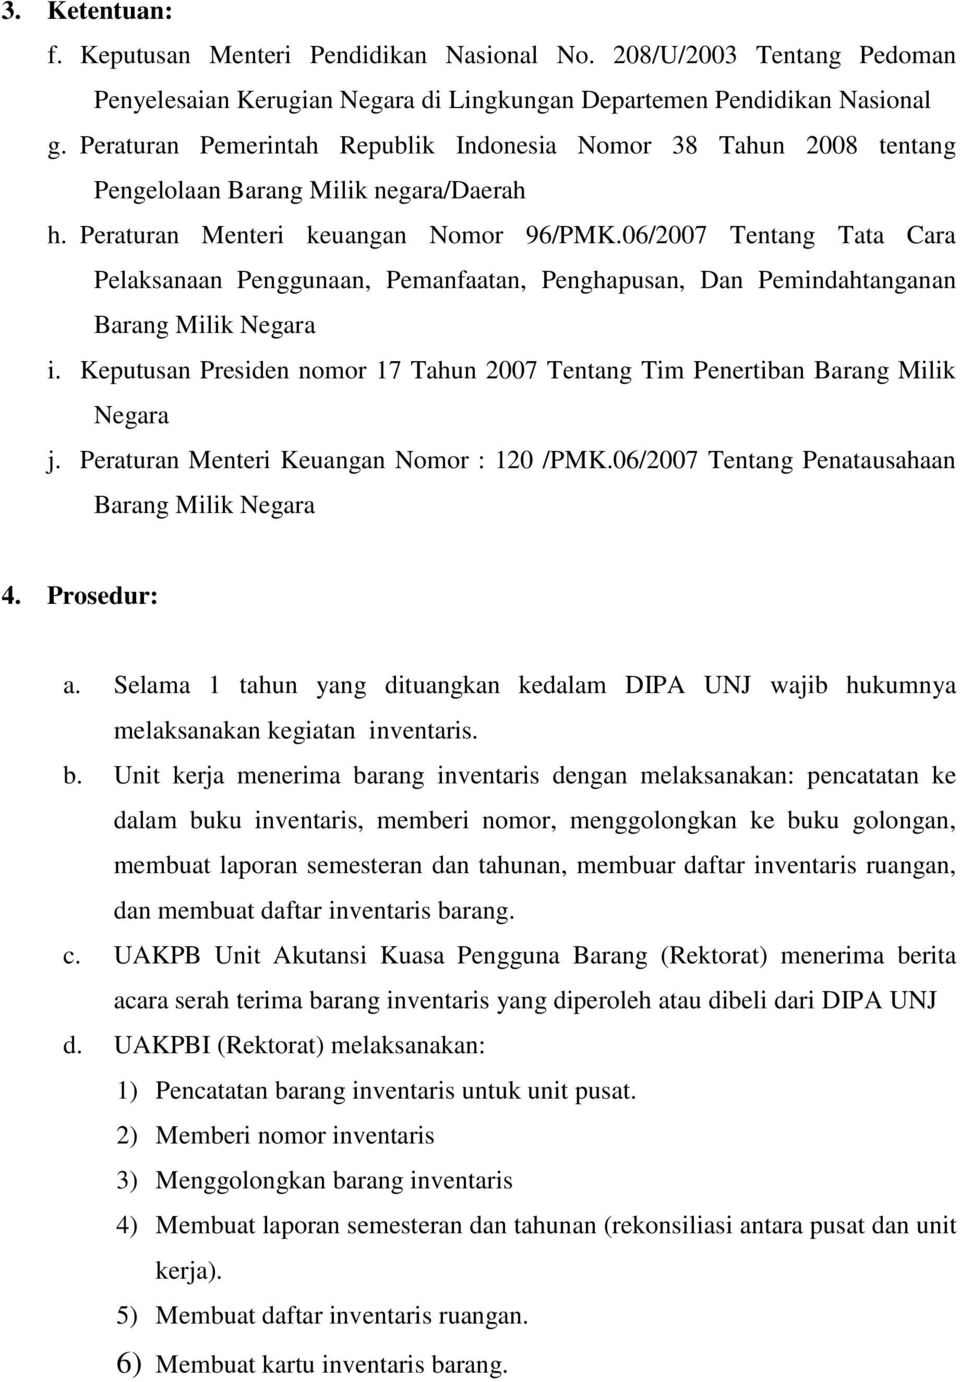 Standard Operating Procedure Sop Penghapusan Barang Milik